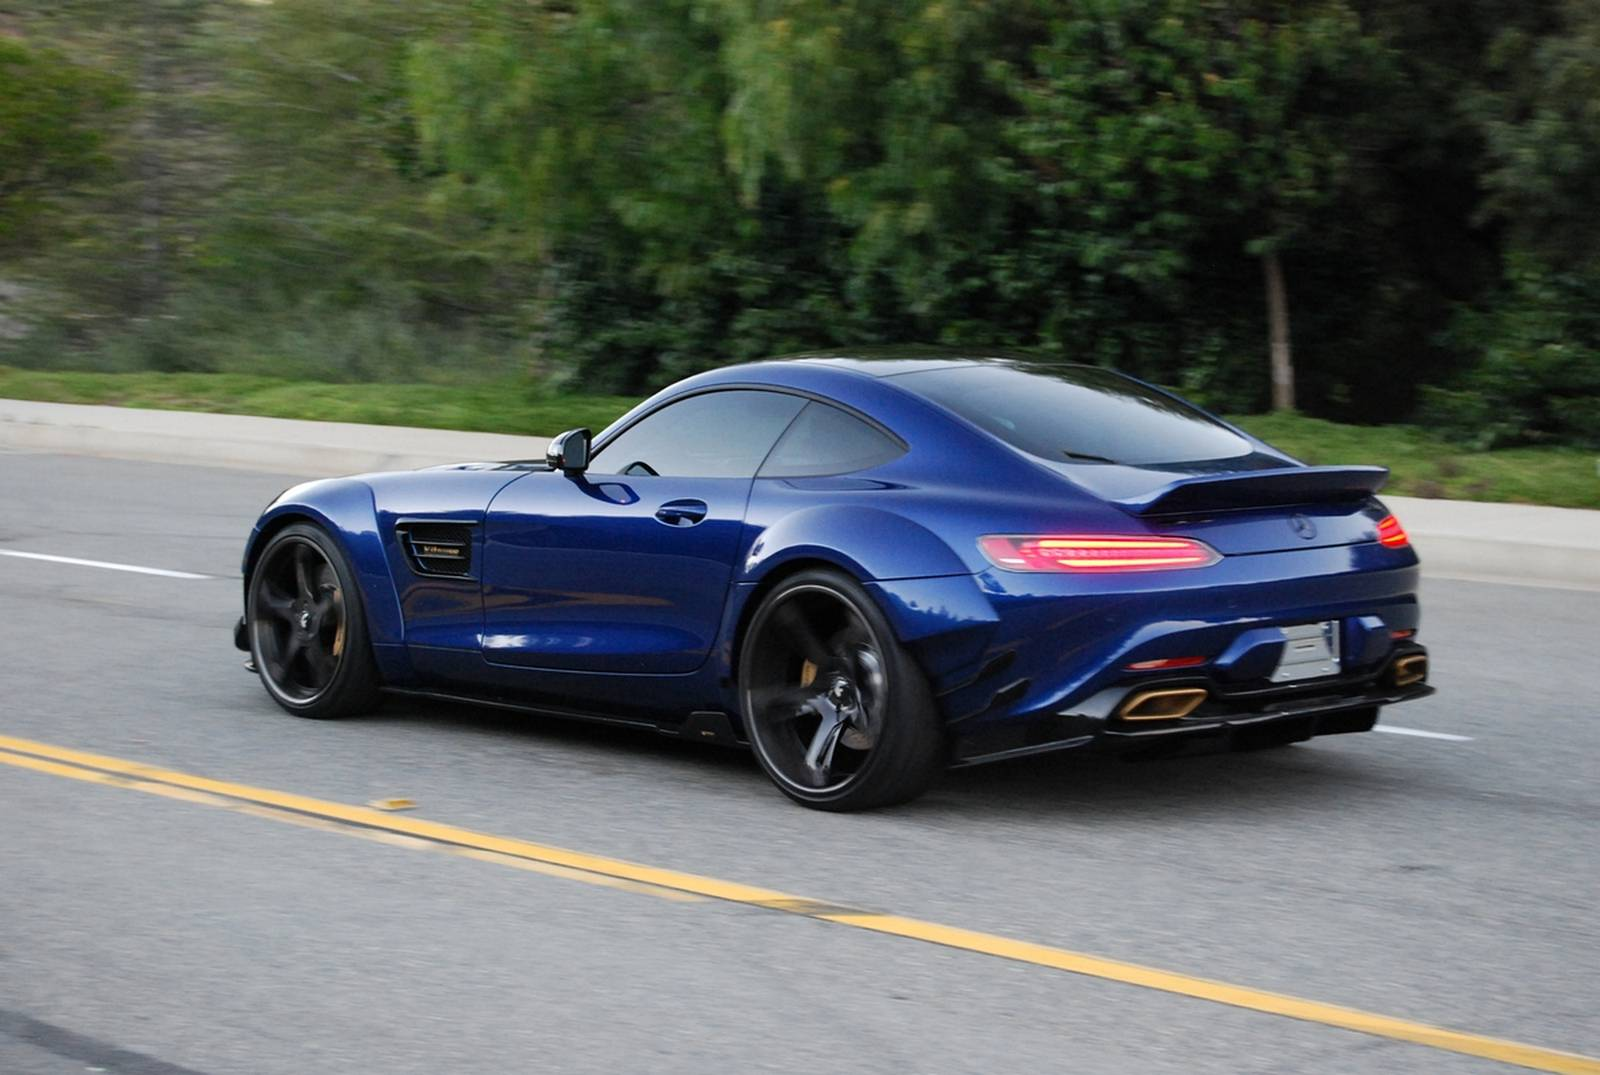 widebody mercedes amg gt s by prior design gtspirit. Black Bedroom Furniture Sets. Home Design Ideas